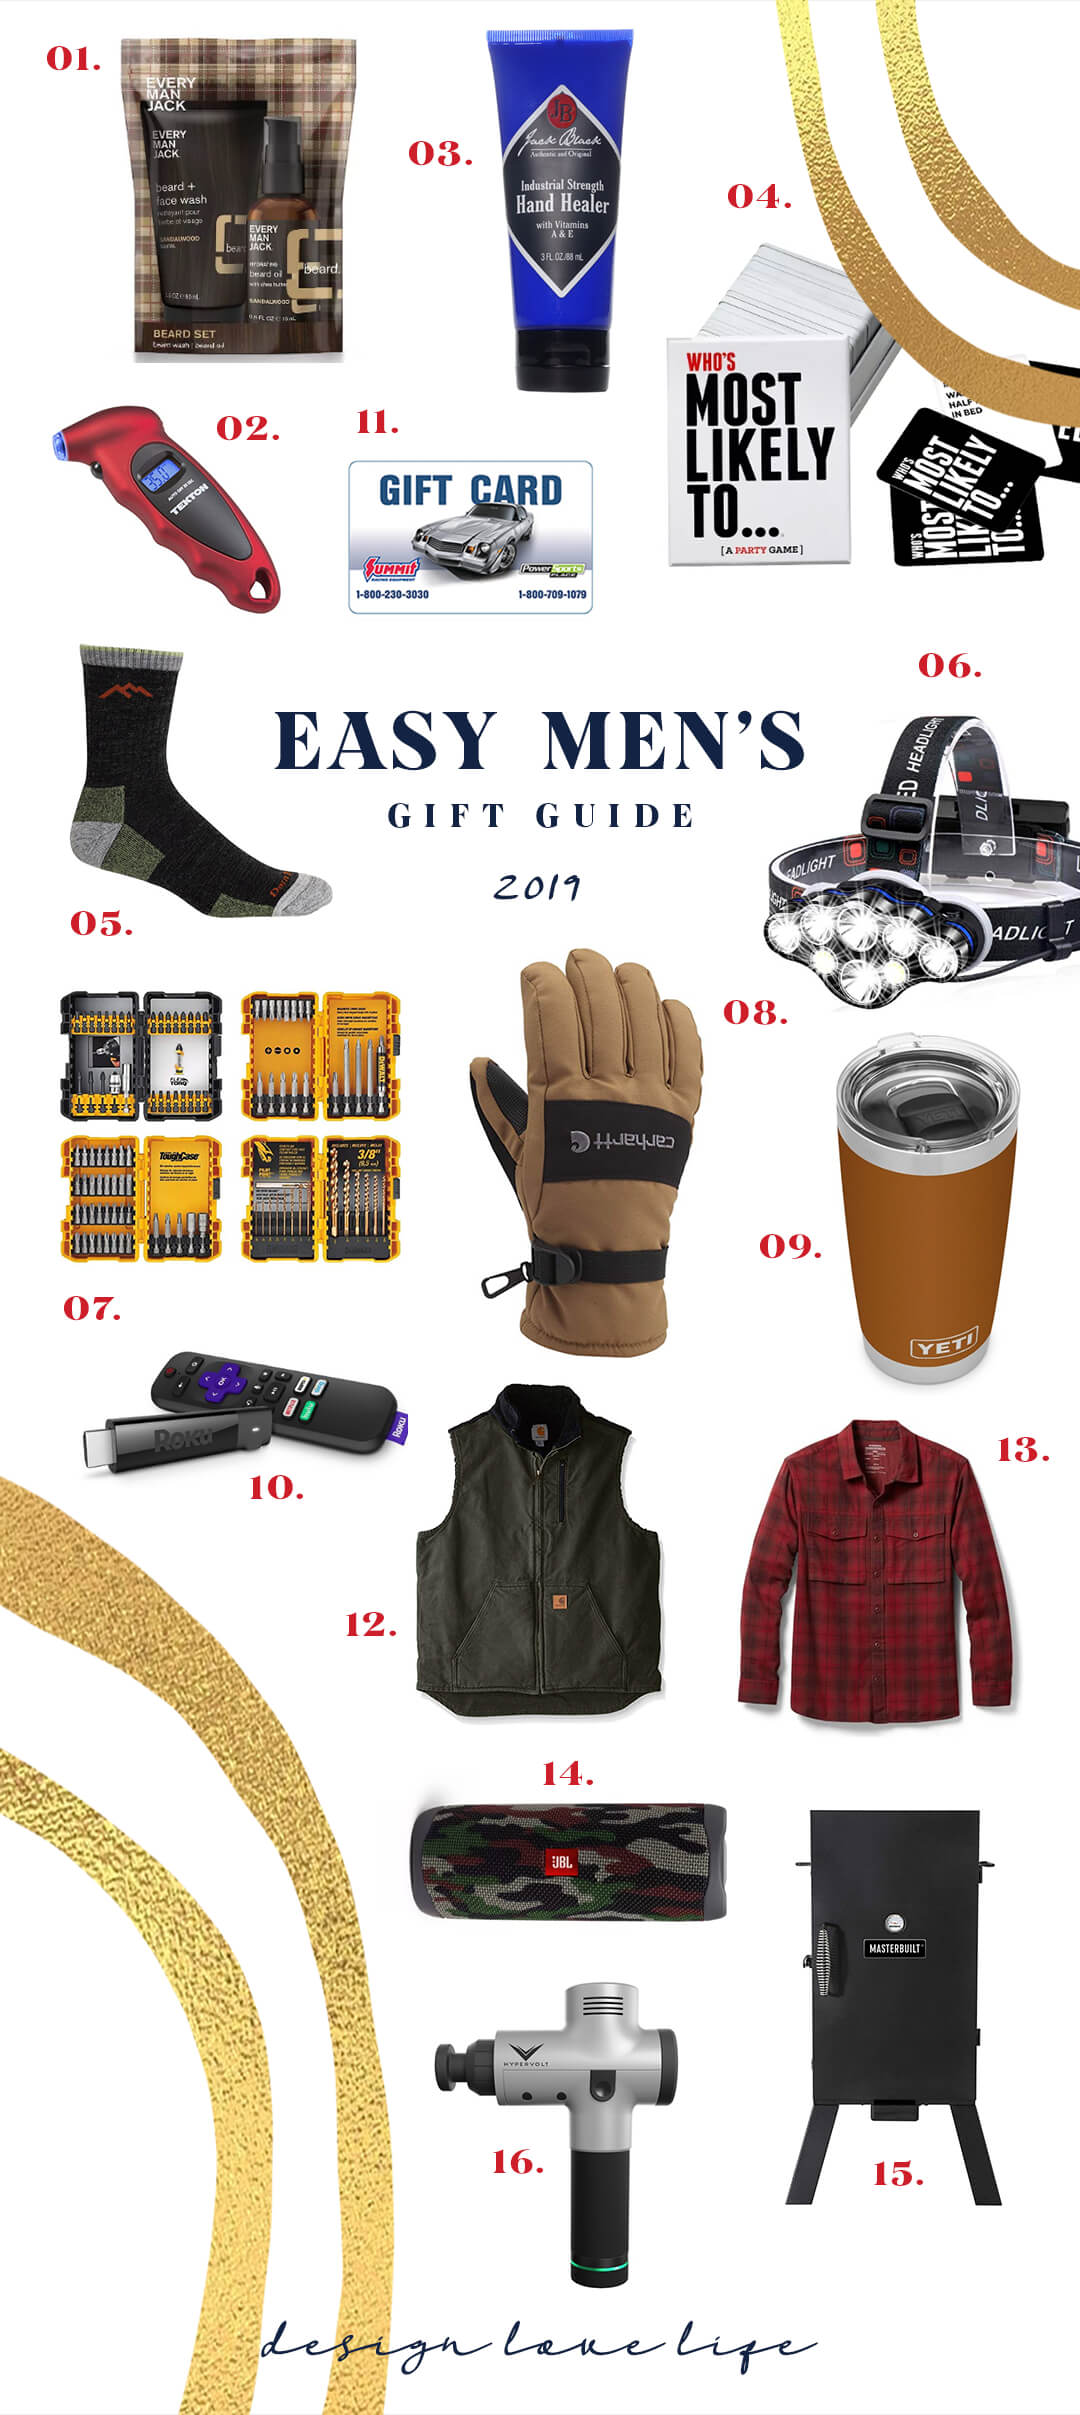 Easy Men's Gift Guide for last minute ideas